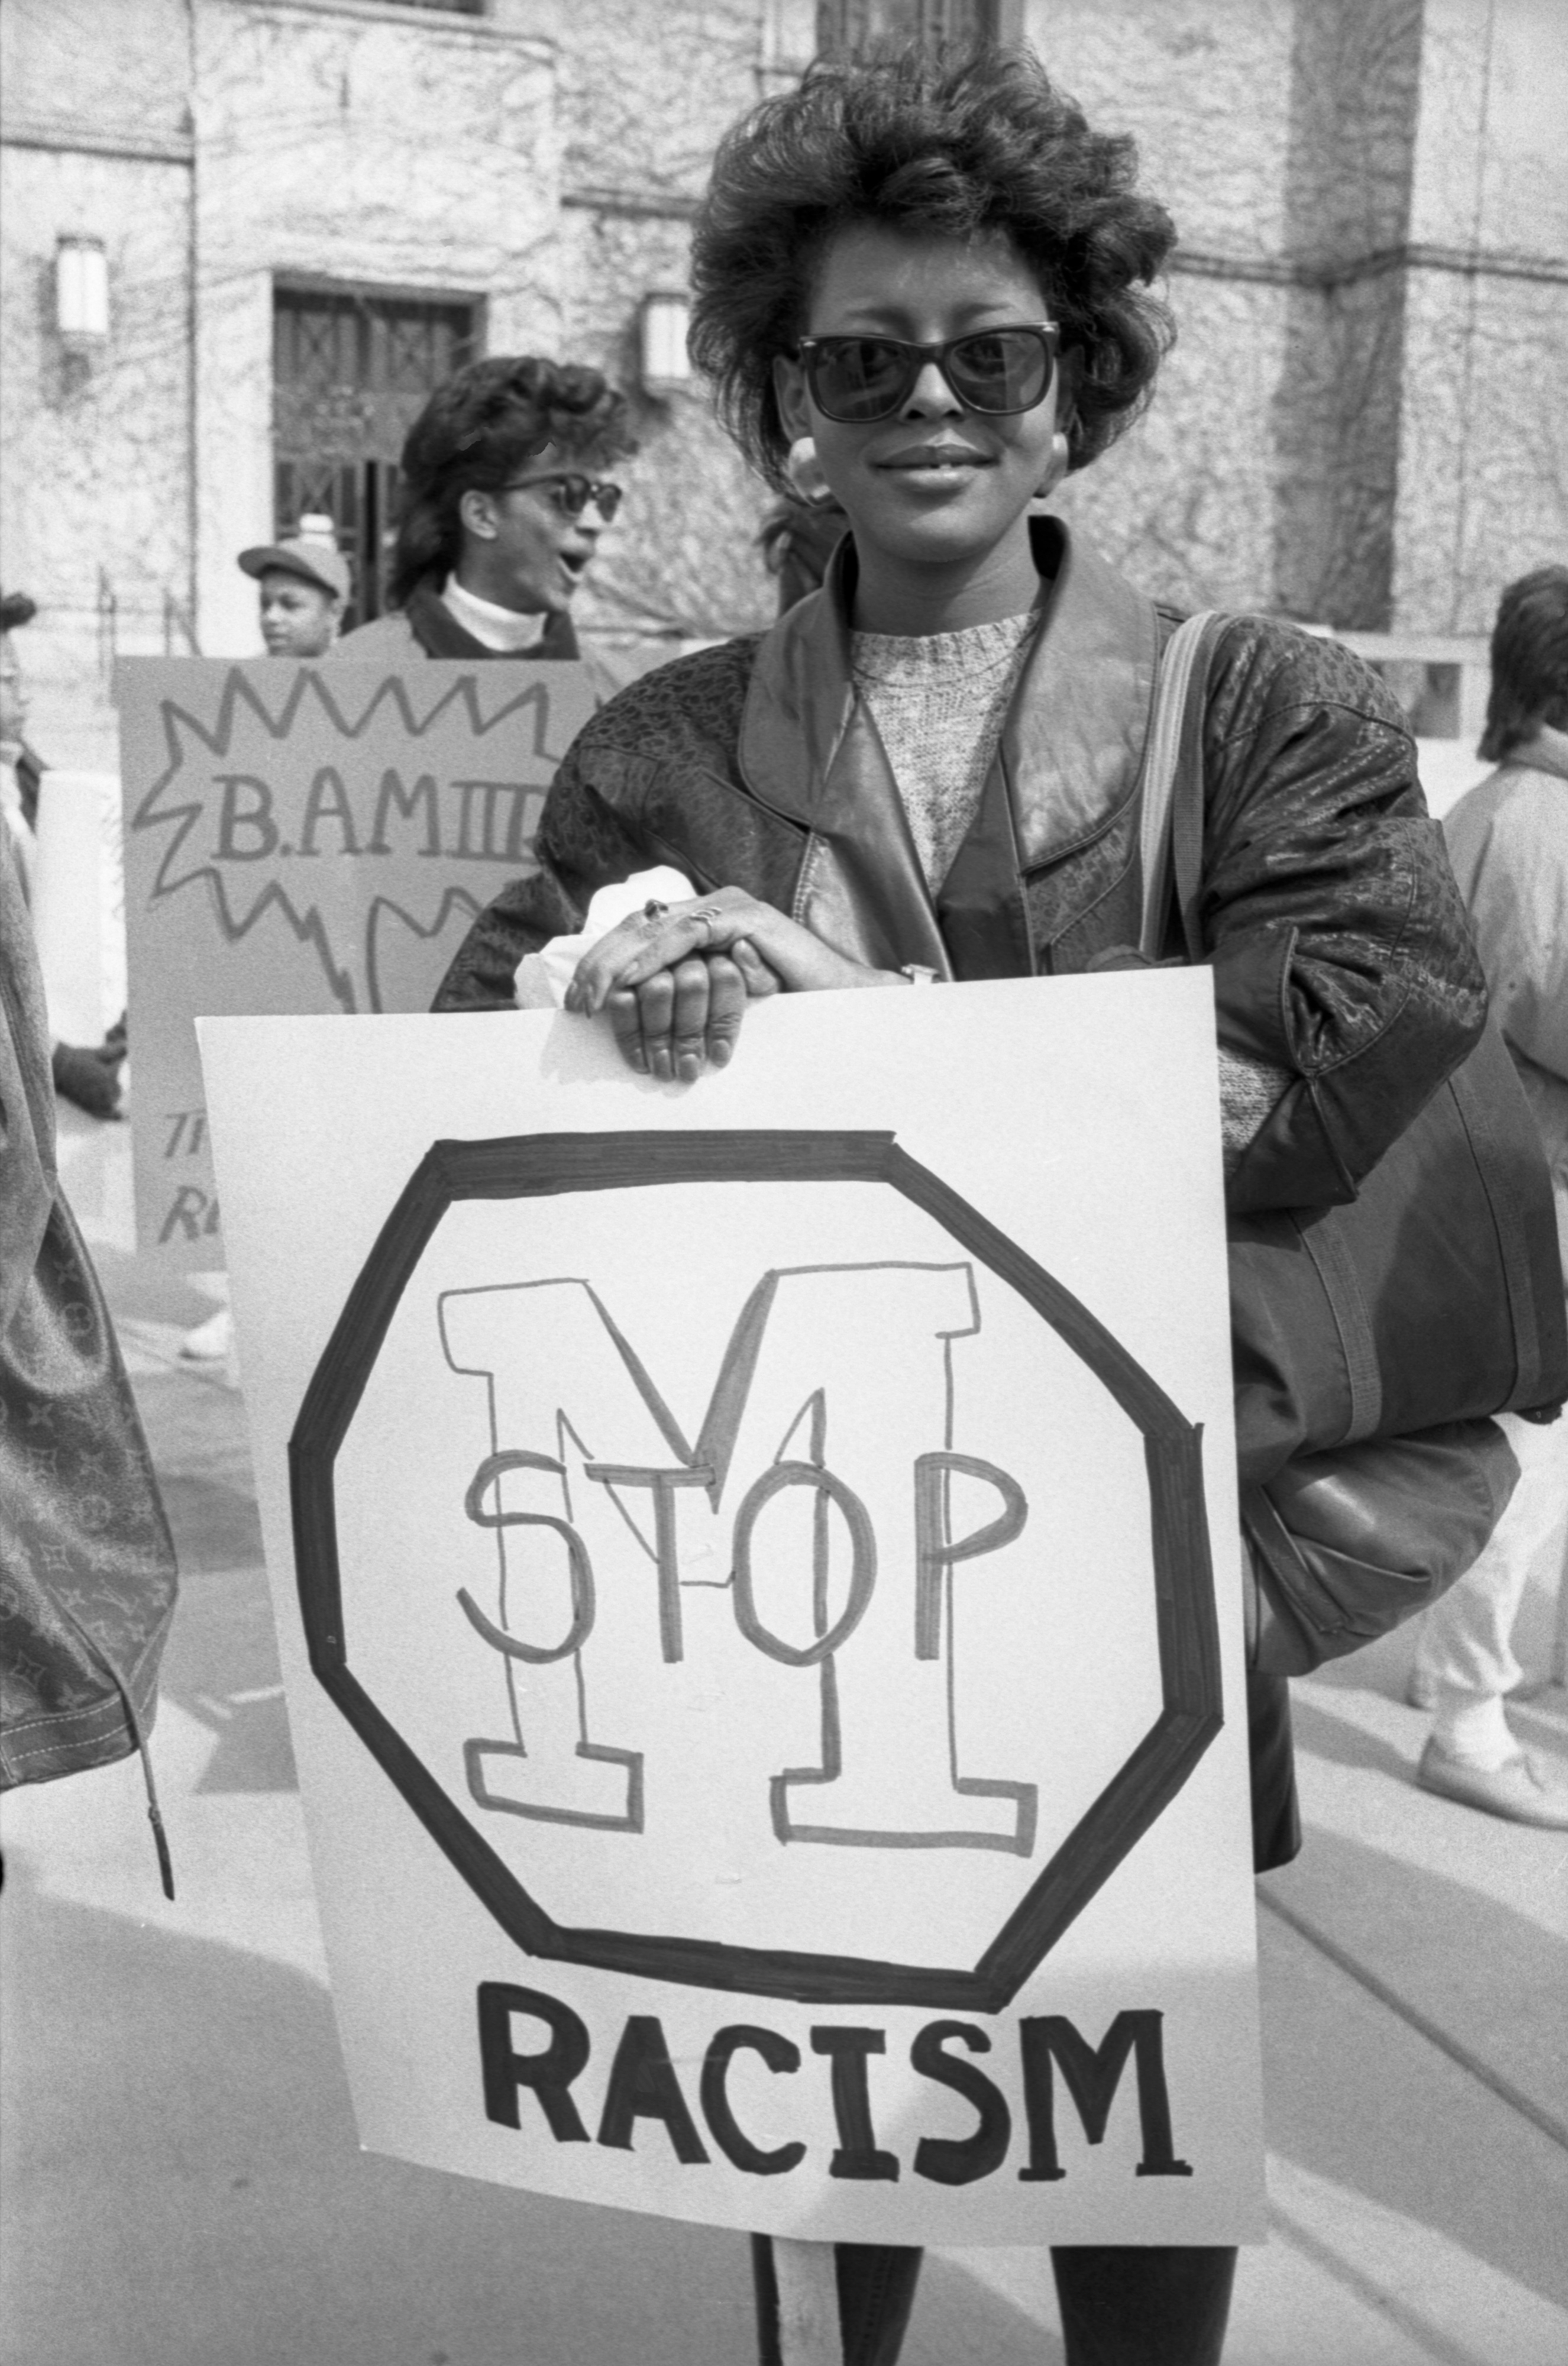 Black Action Movement III Protester, March 18, 1987 image